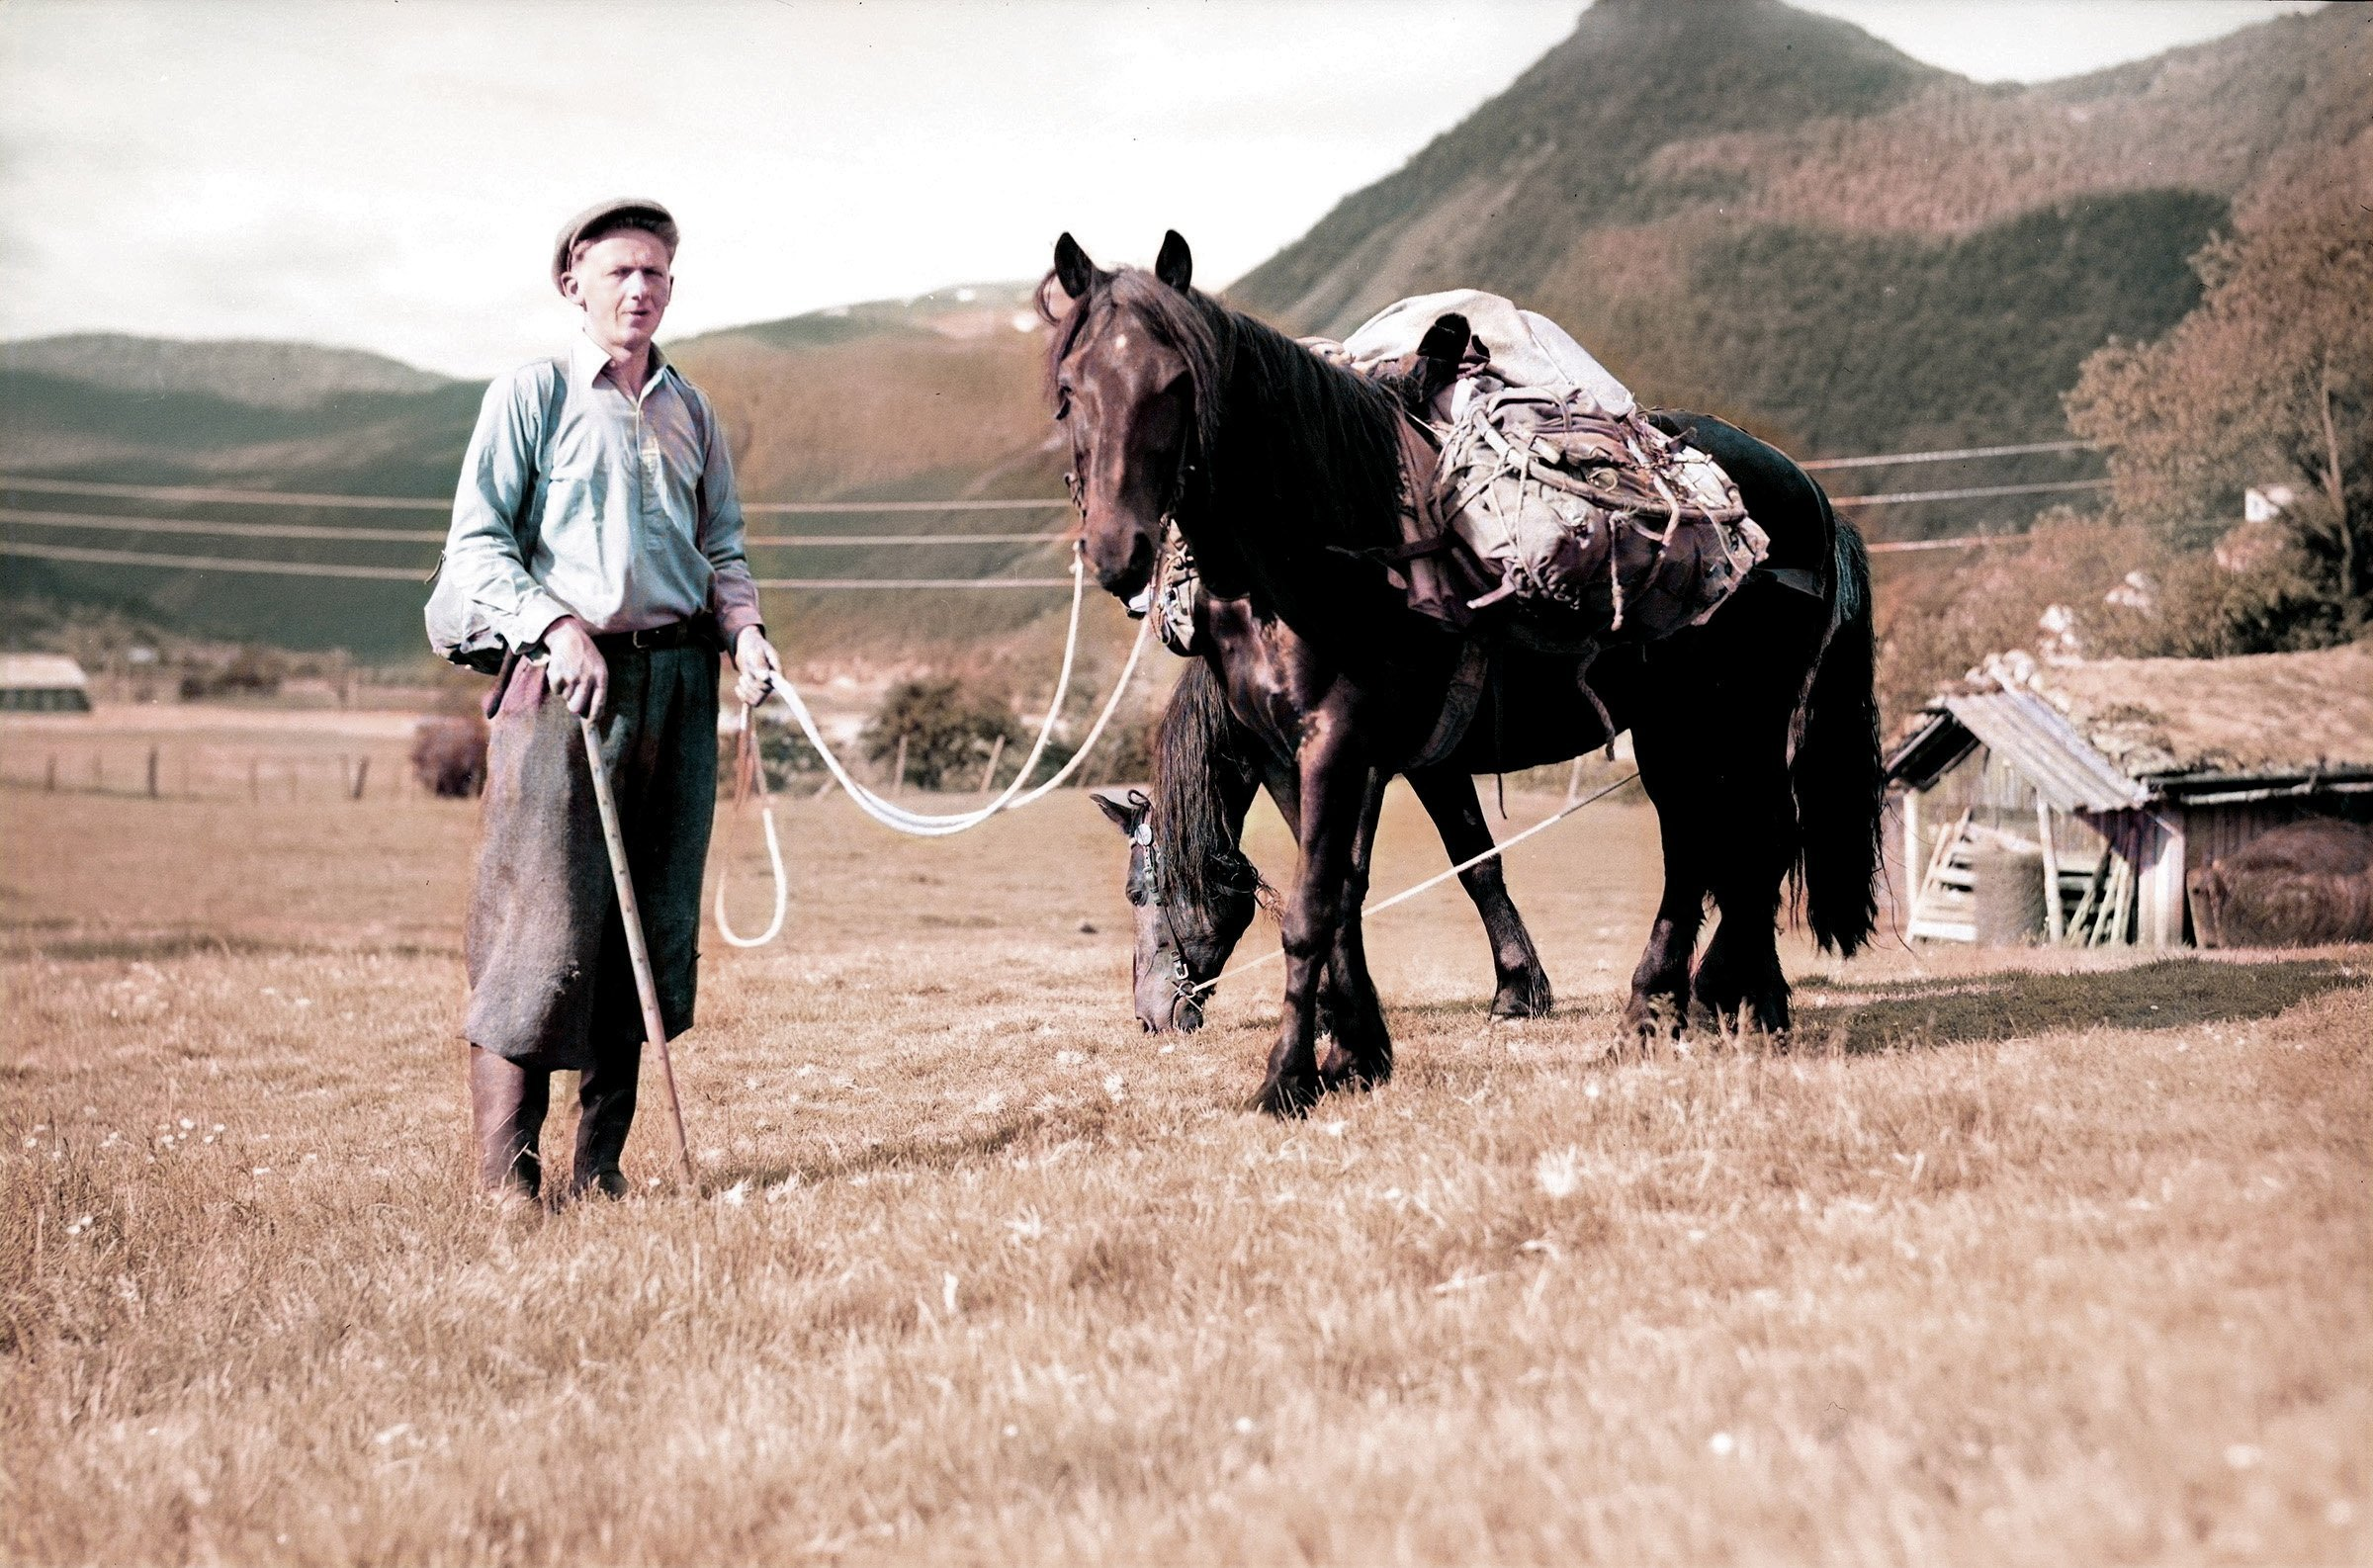 Man with his packhorses in Valle, Setesdal, Agder, Norway - in 1948. | Photo: Mittet & Co AS DeOldify cc pdm.